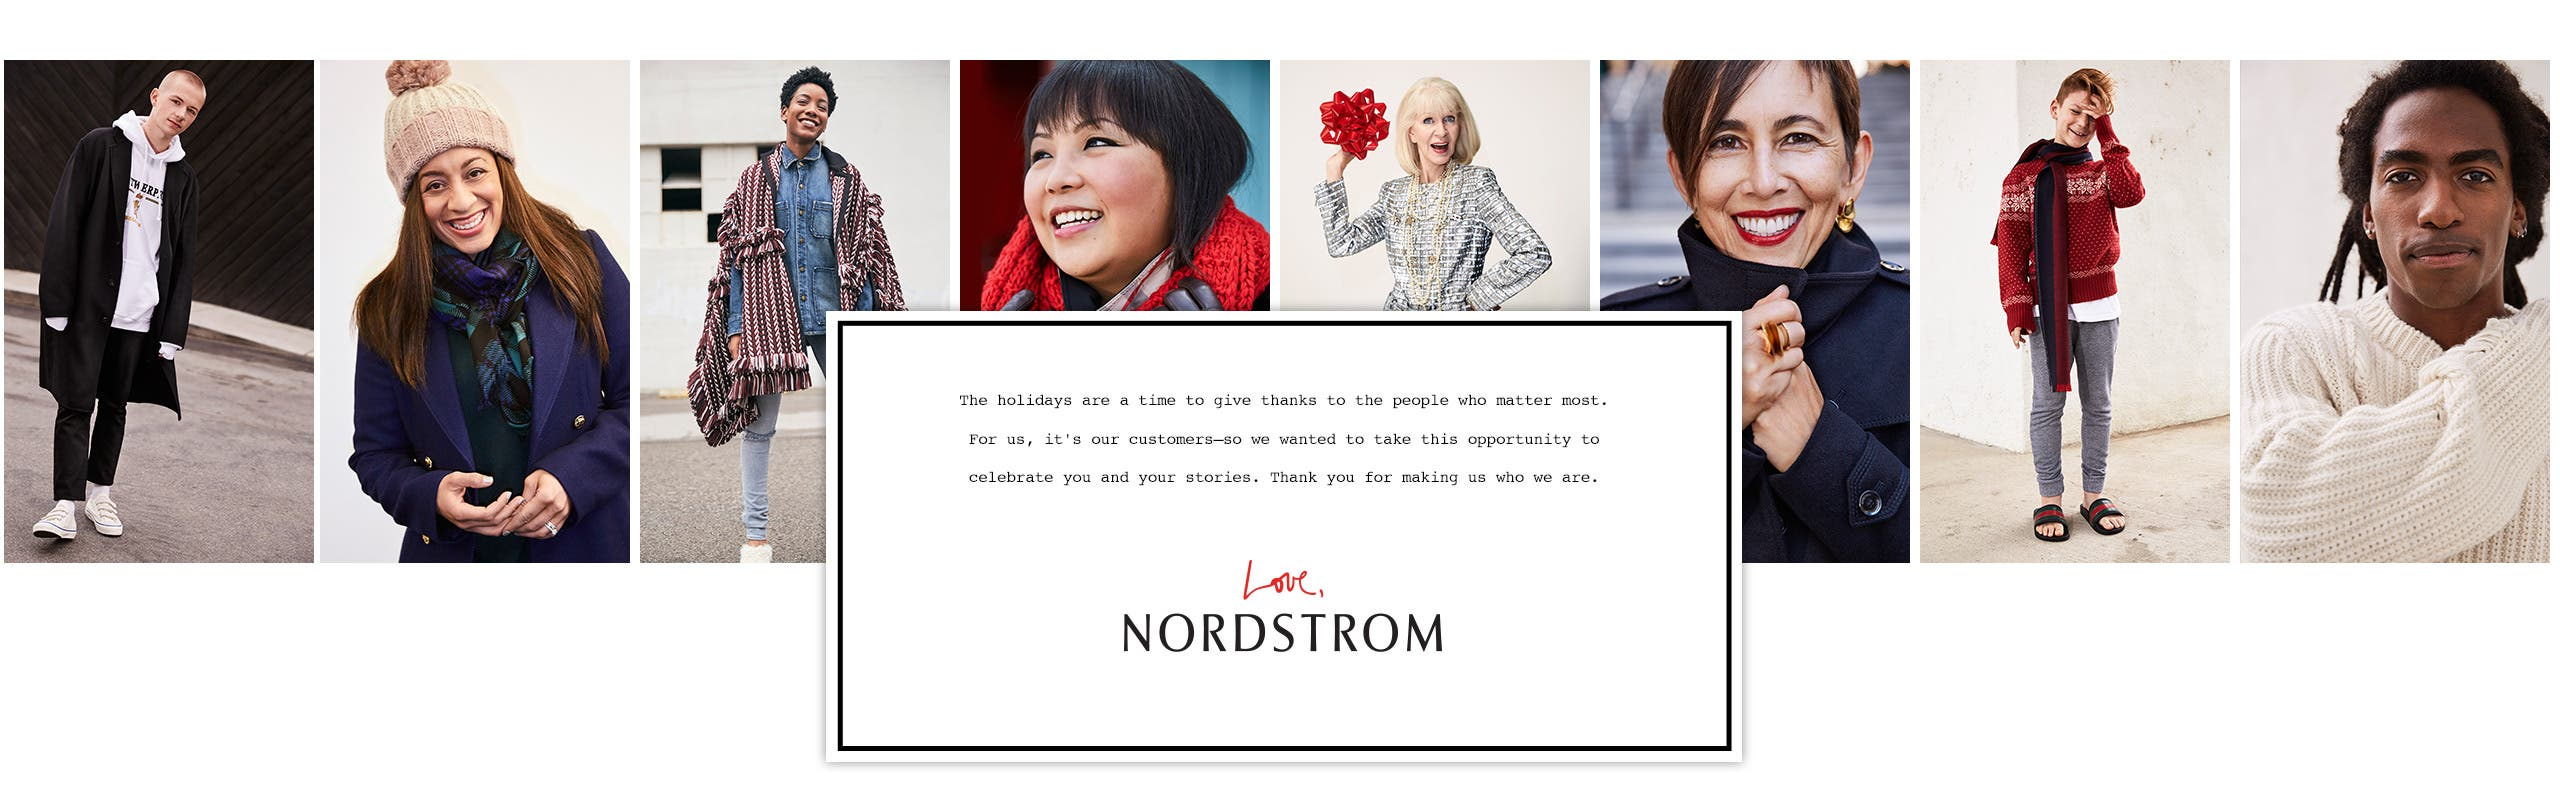 The holidays are a time to give thanks to the people who matter most. For us, it's our customers. Thank you for making us who we are. Love, Nordstrom.